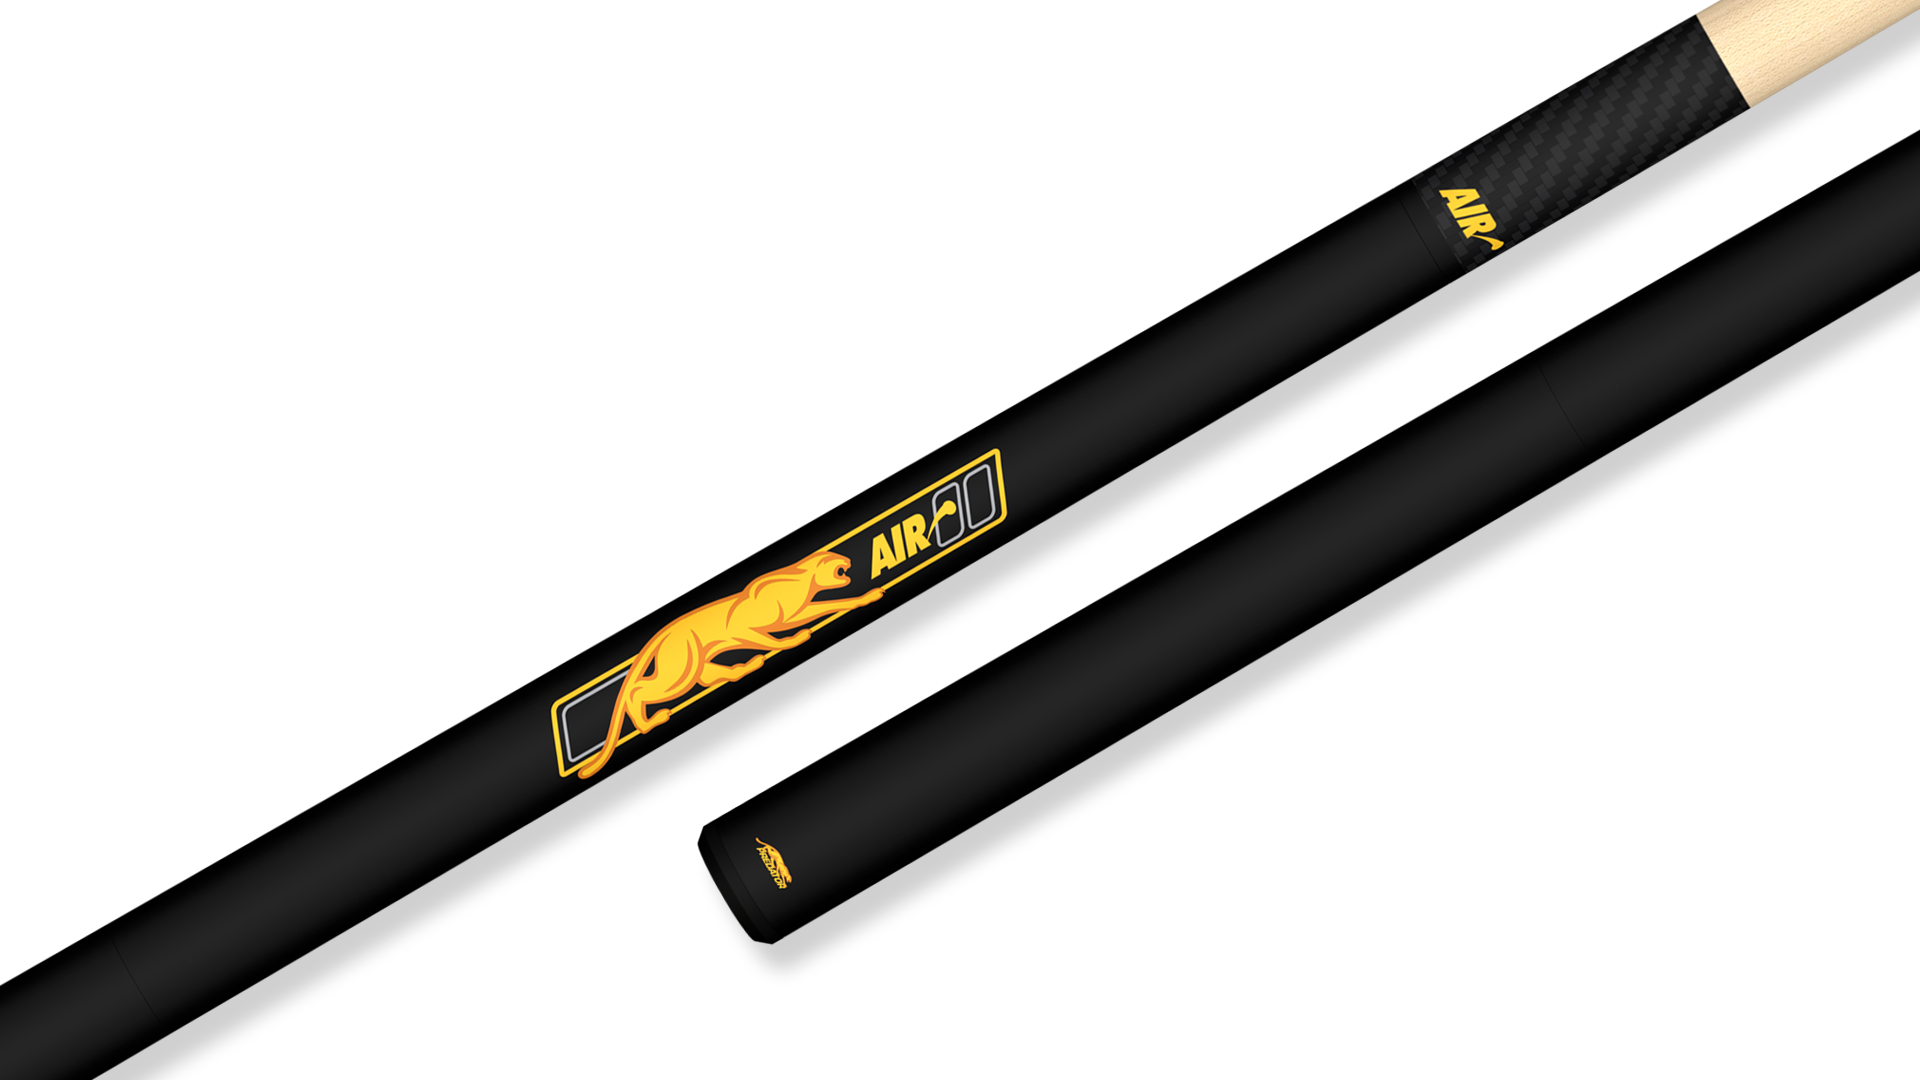 Predator Air II Jump Cue - Blatt Billiards